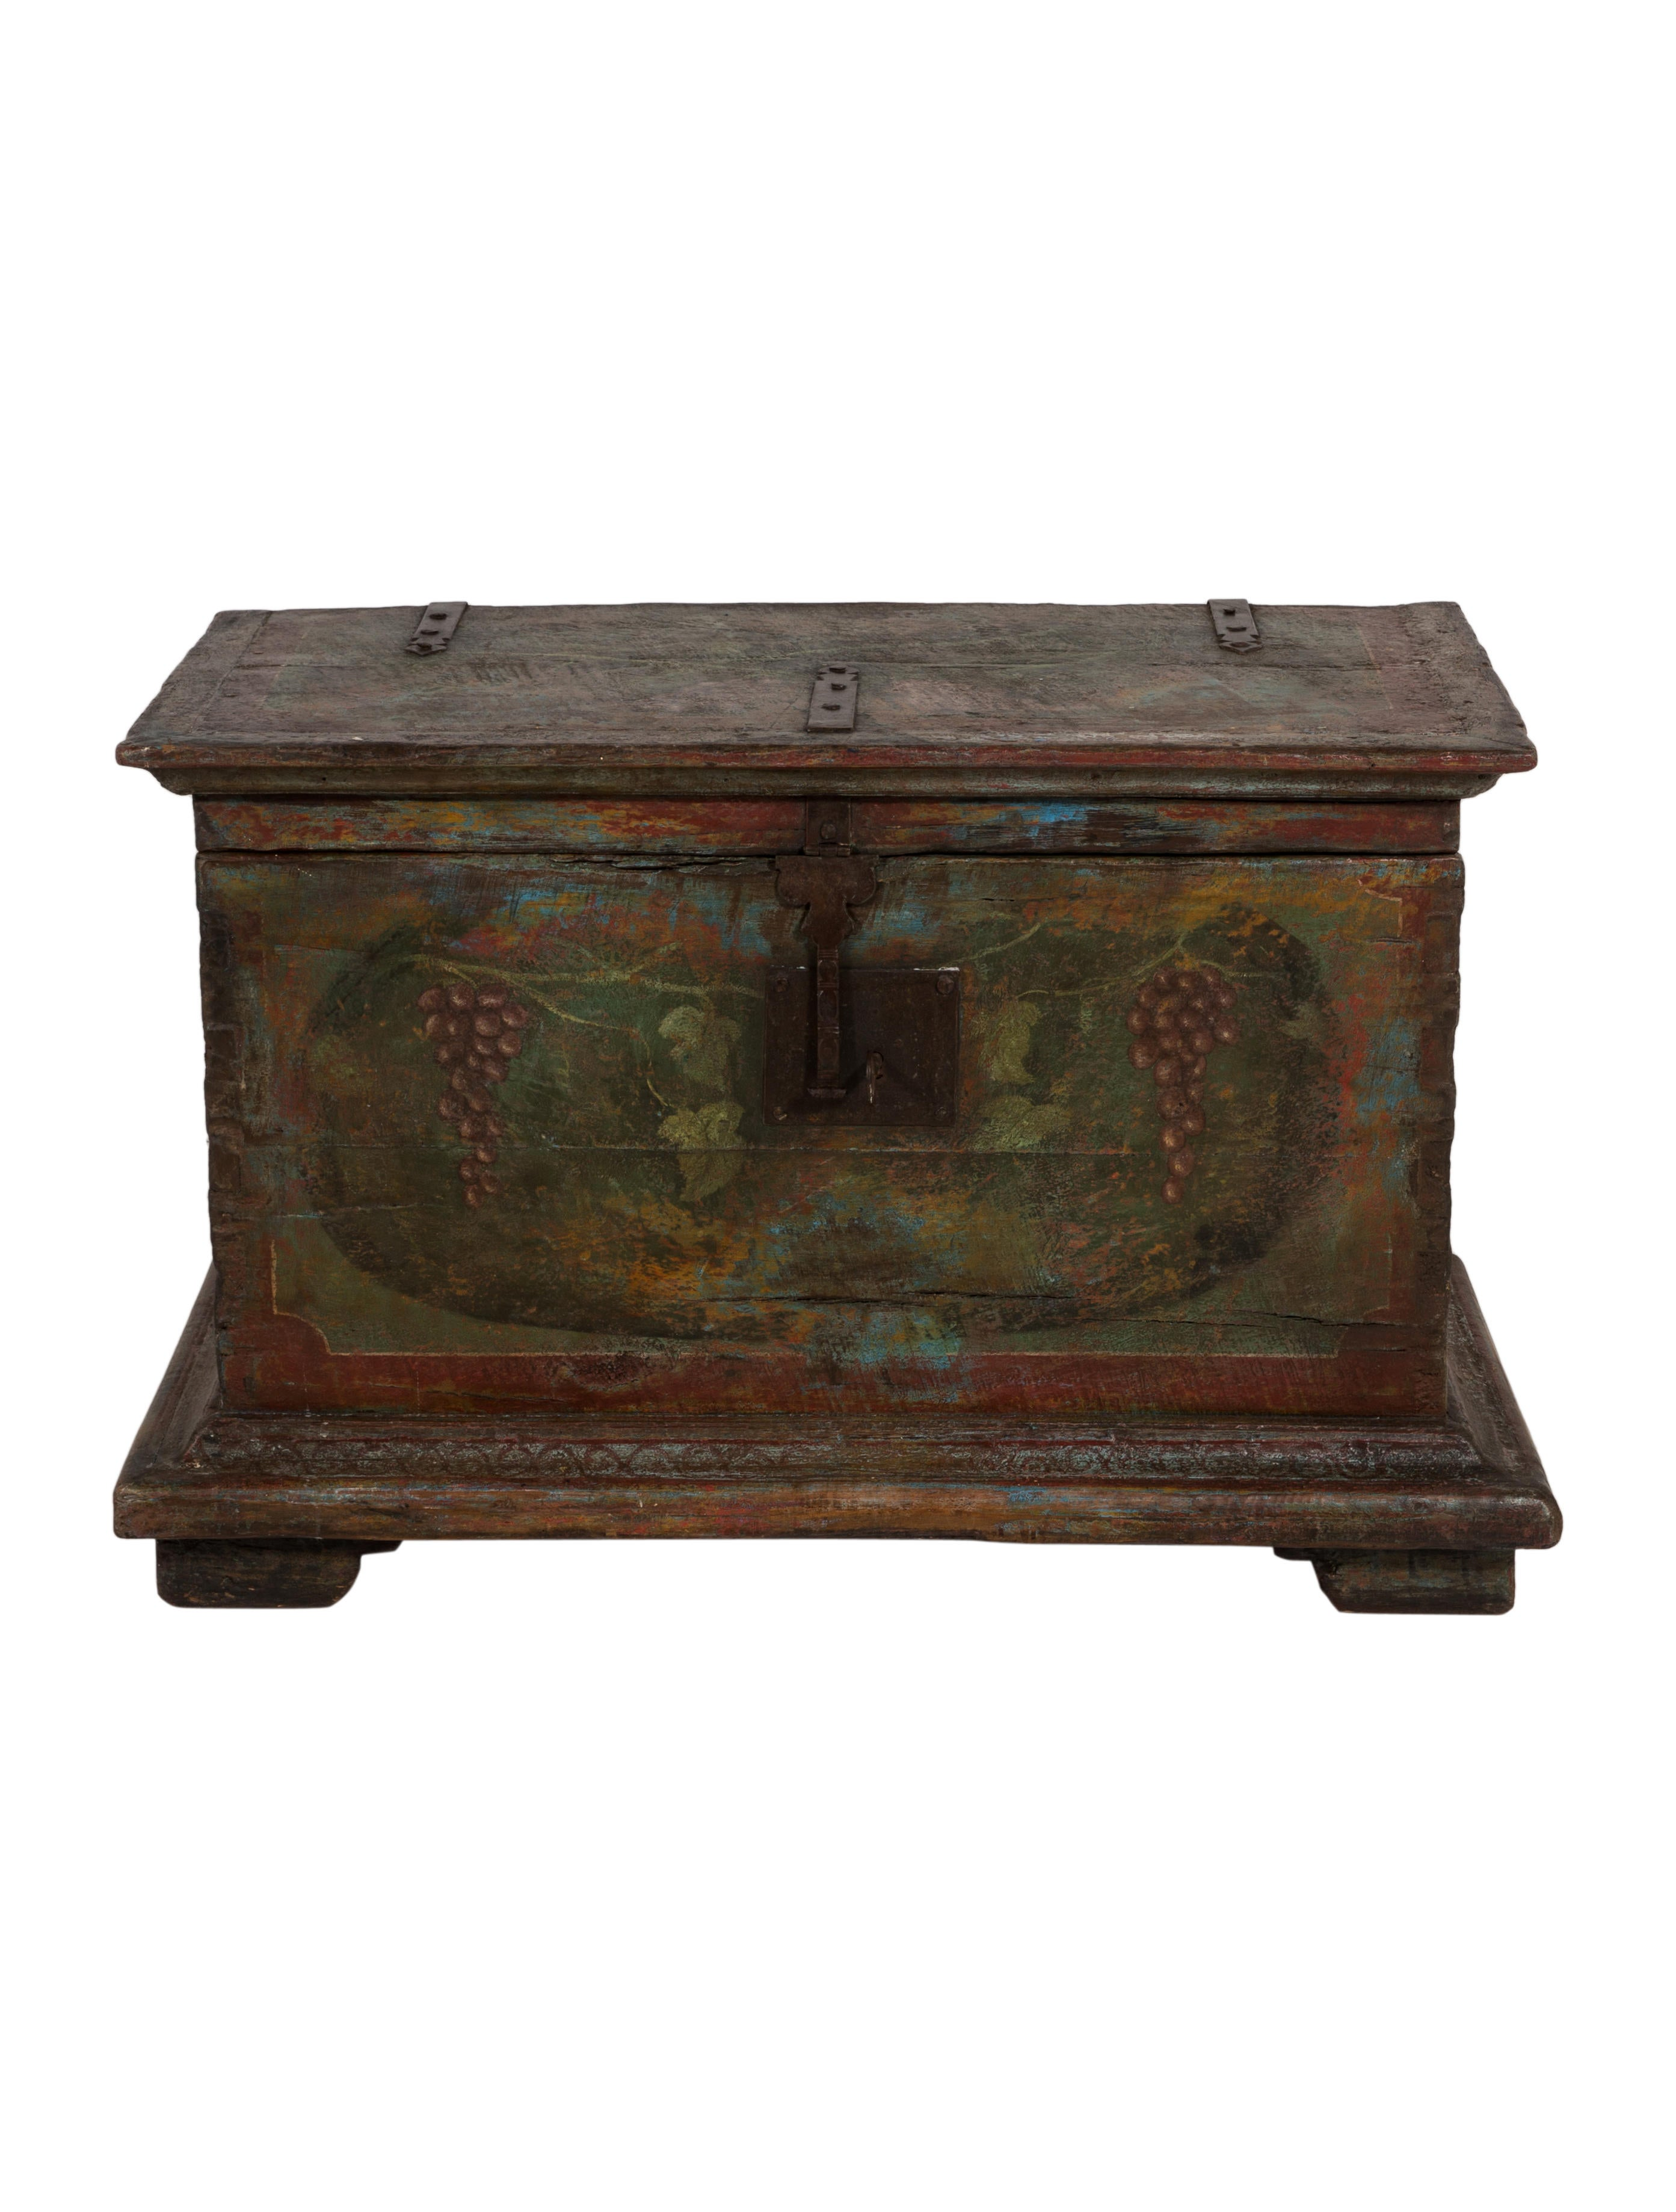 Antique painted chest decor and accessories furni20600 for Decorative home products